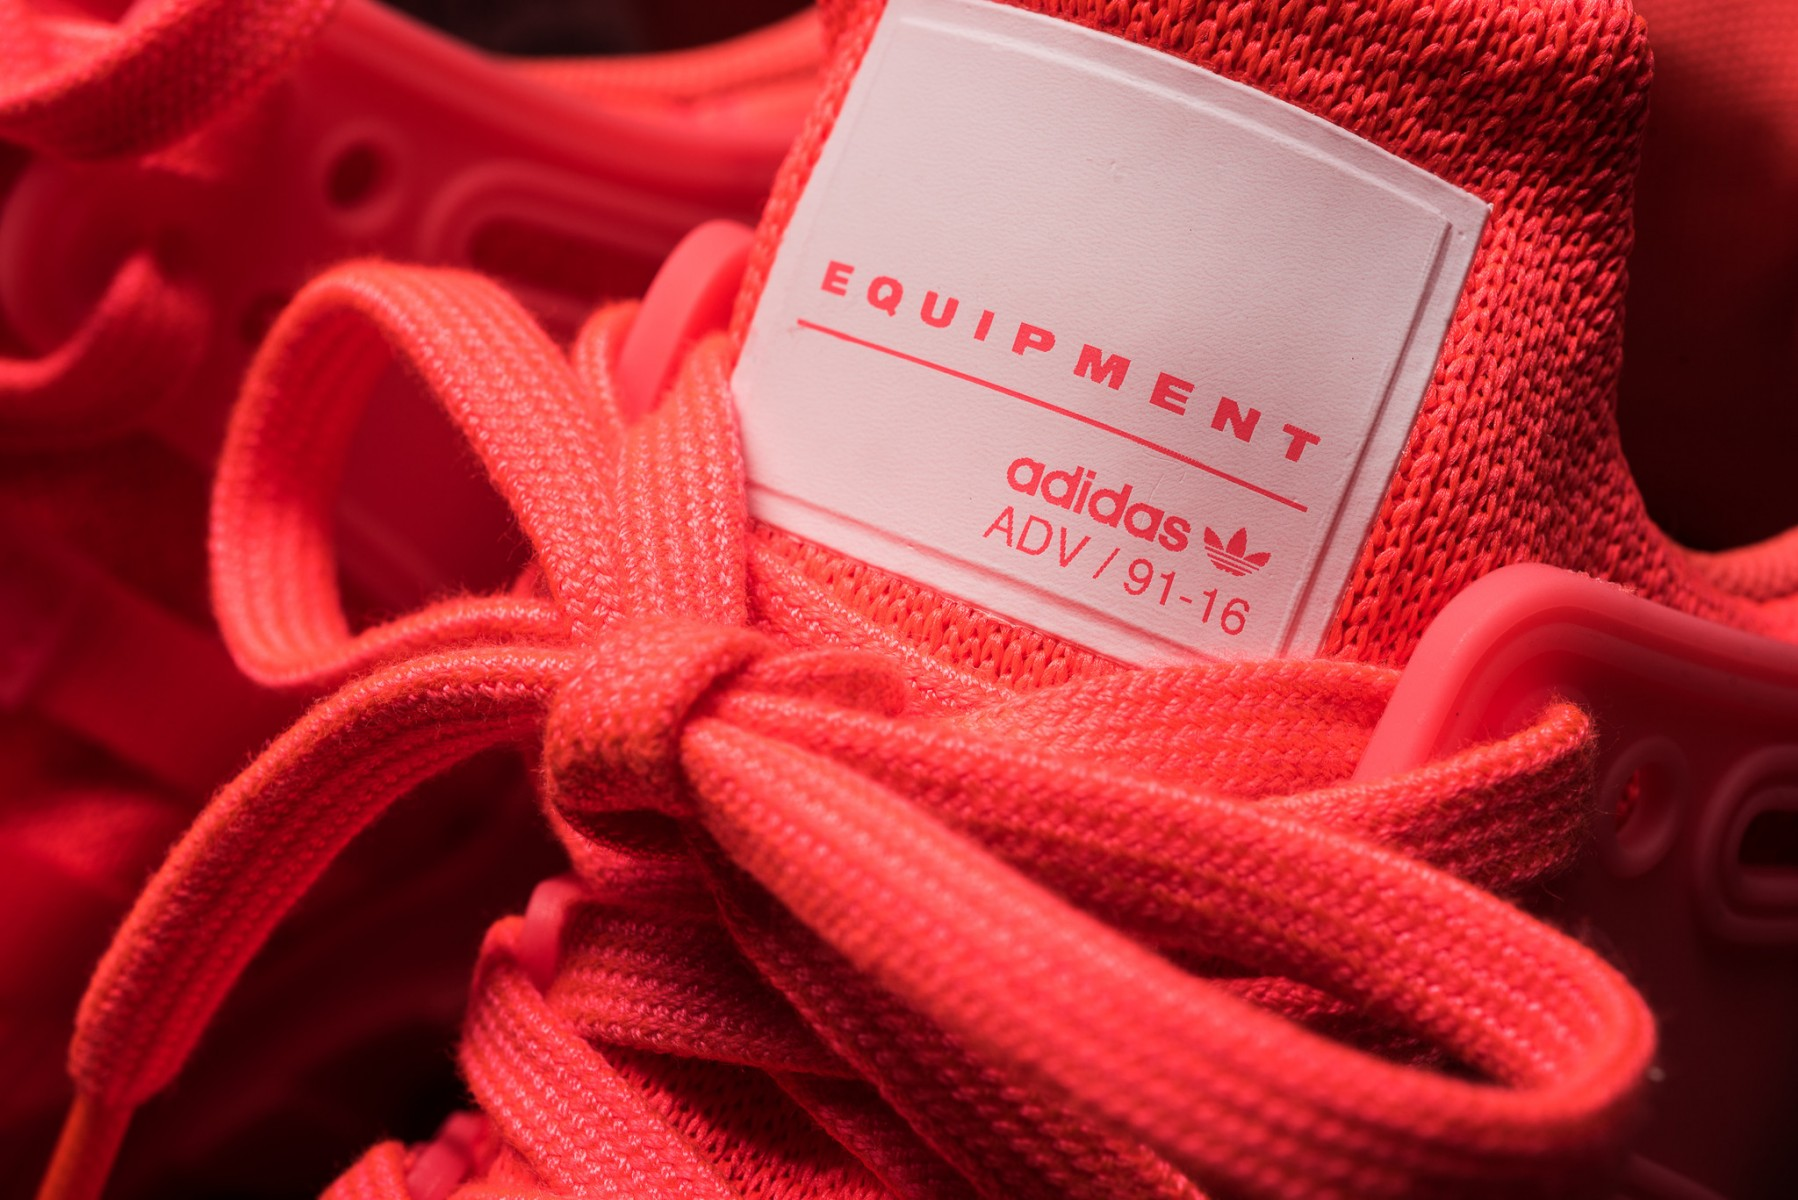 adidas-eqt-advance-support-hot-pink-5-1798x1200